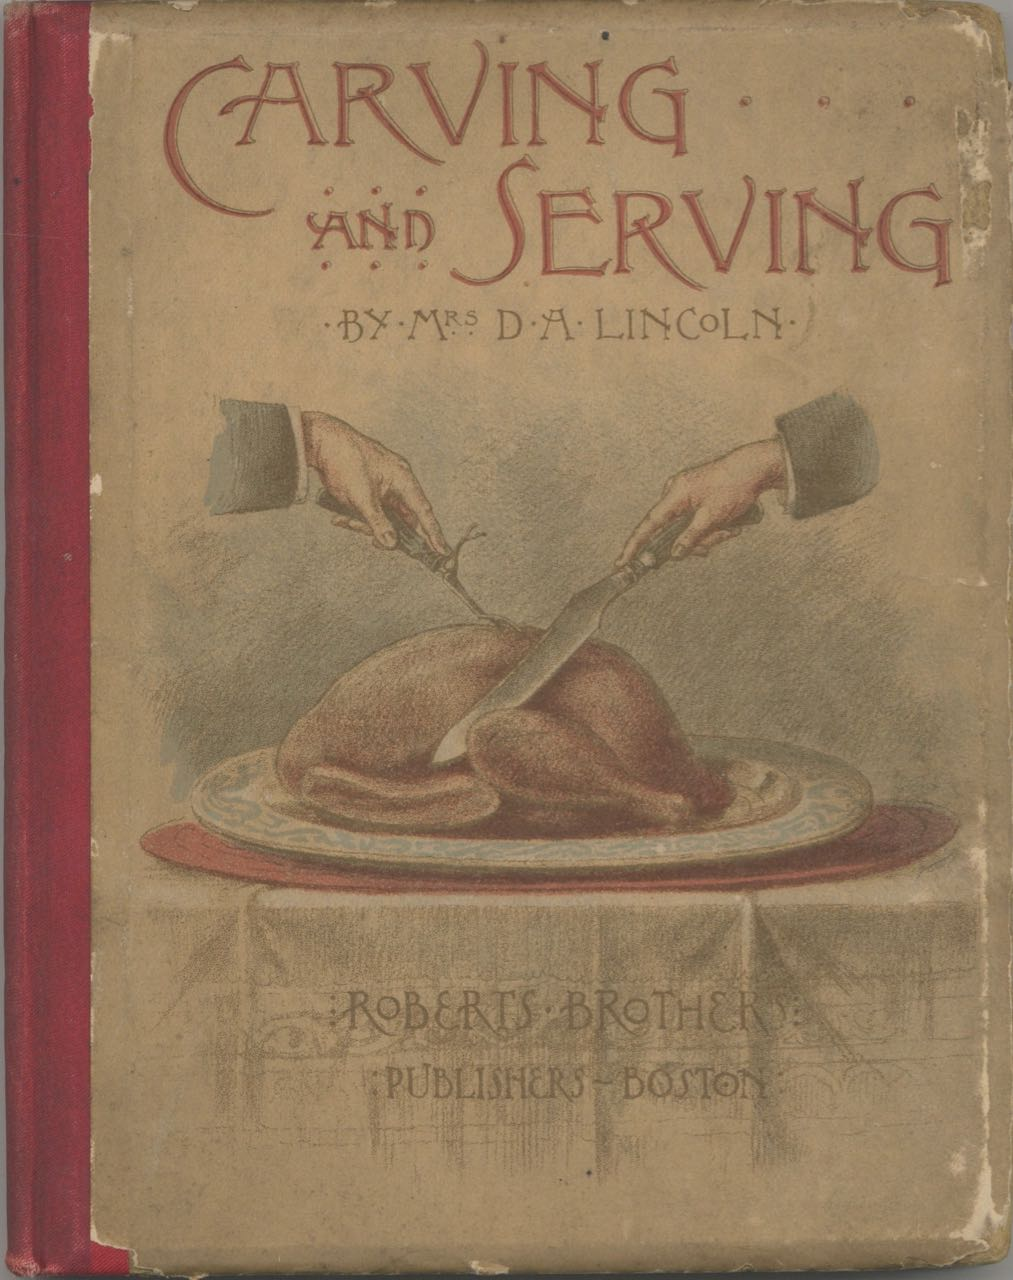 Carving and Serving. Mrs. D. A. Lincoln.